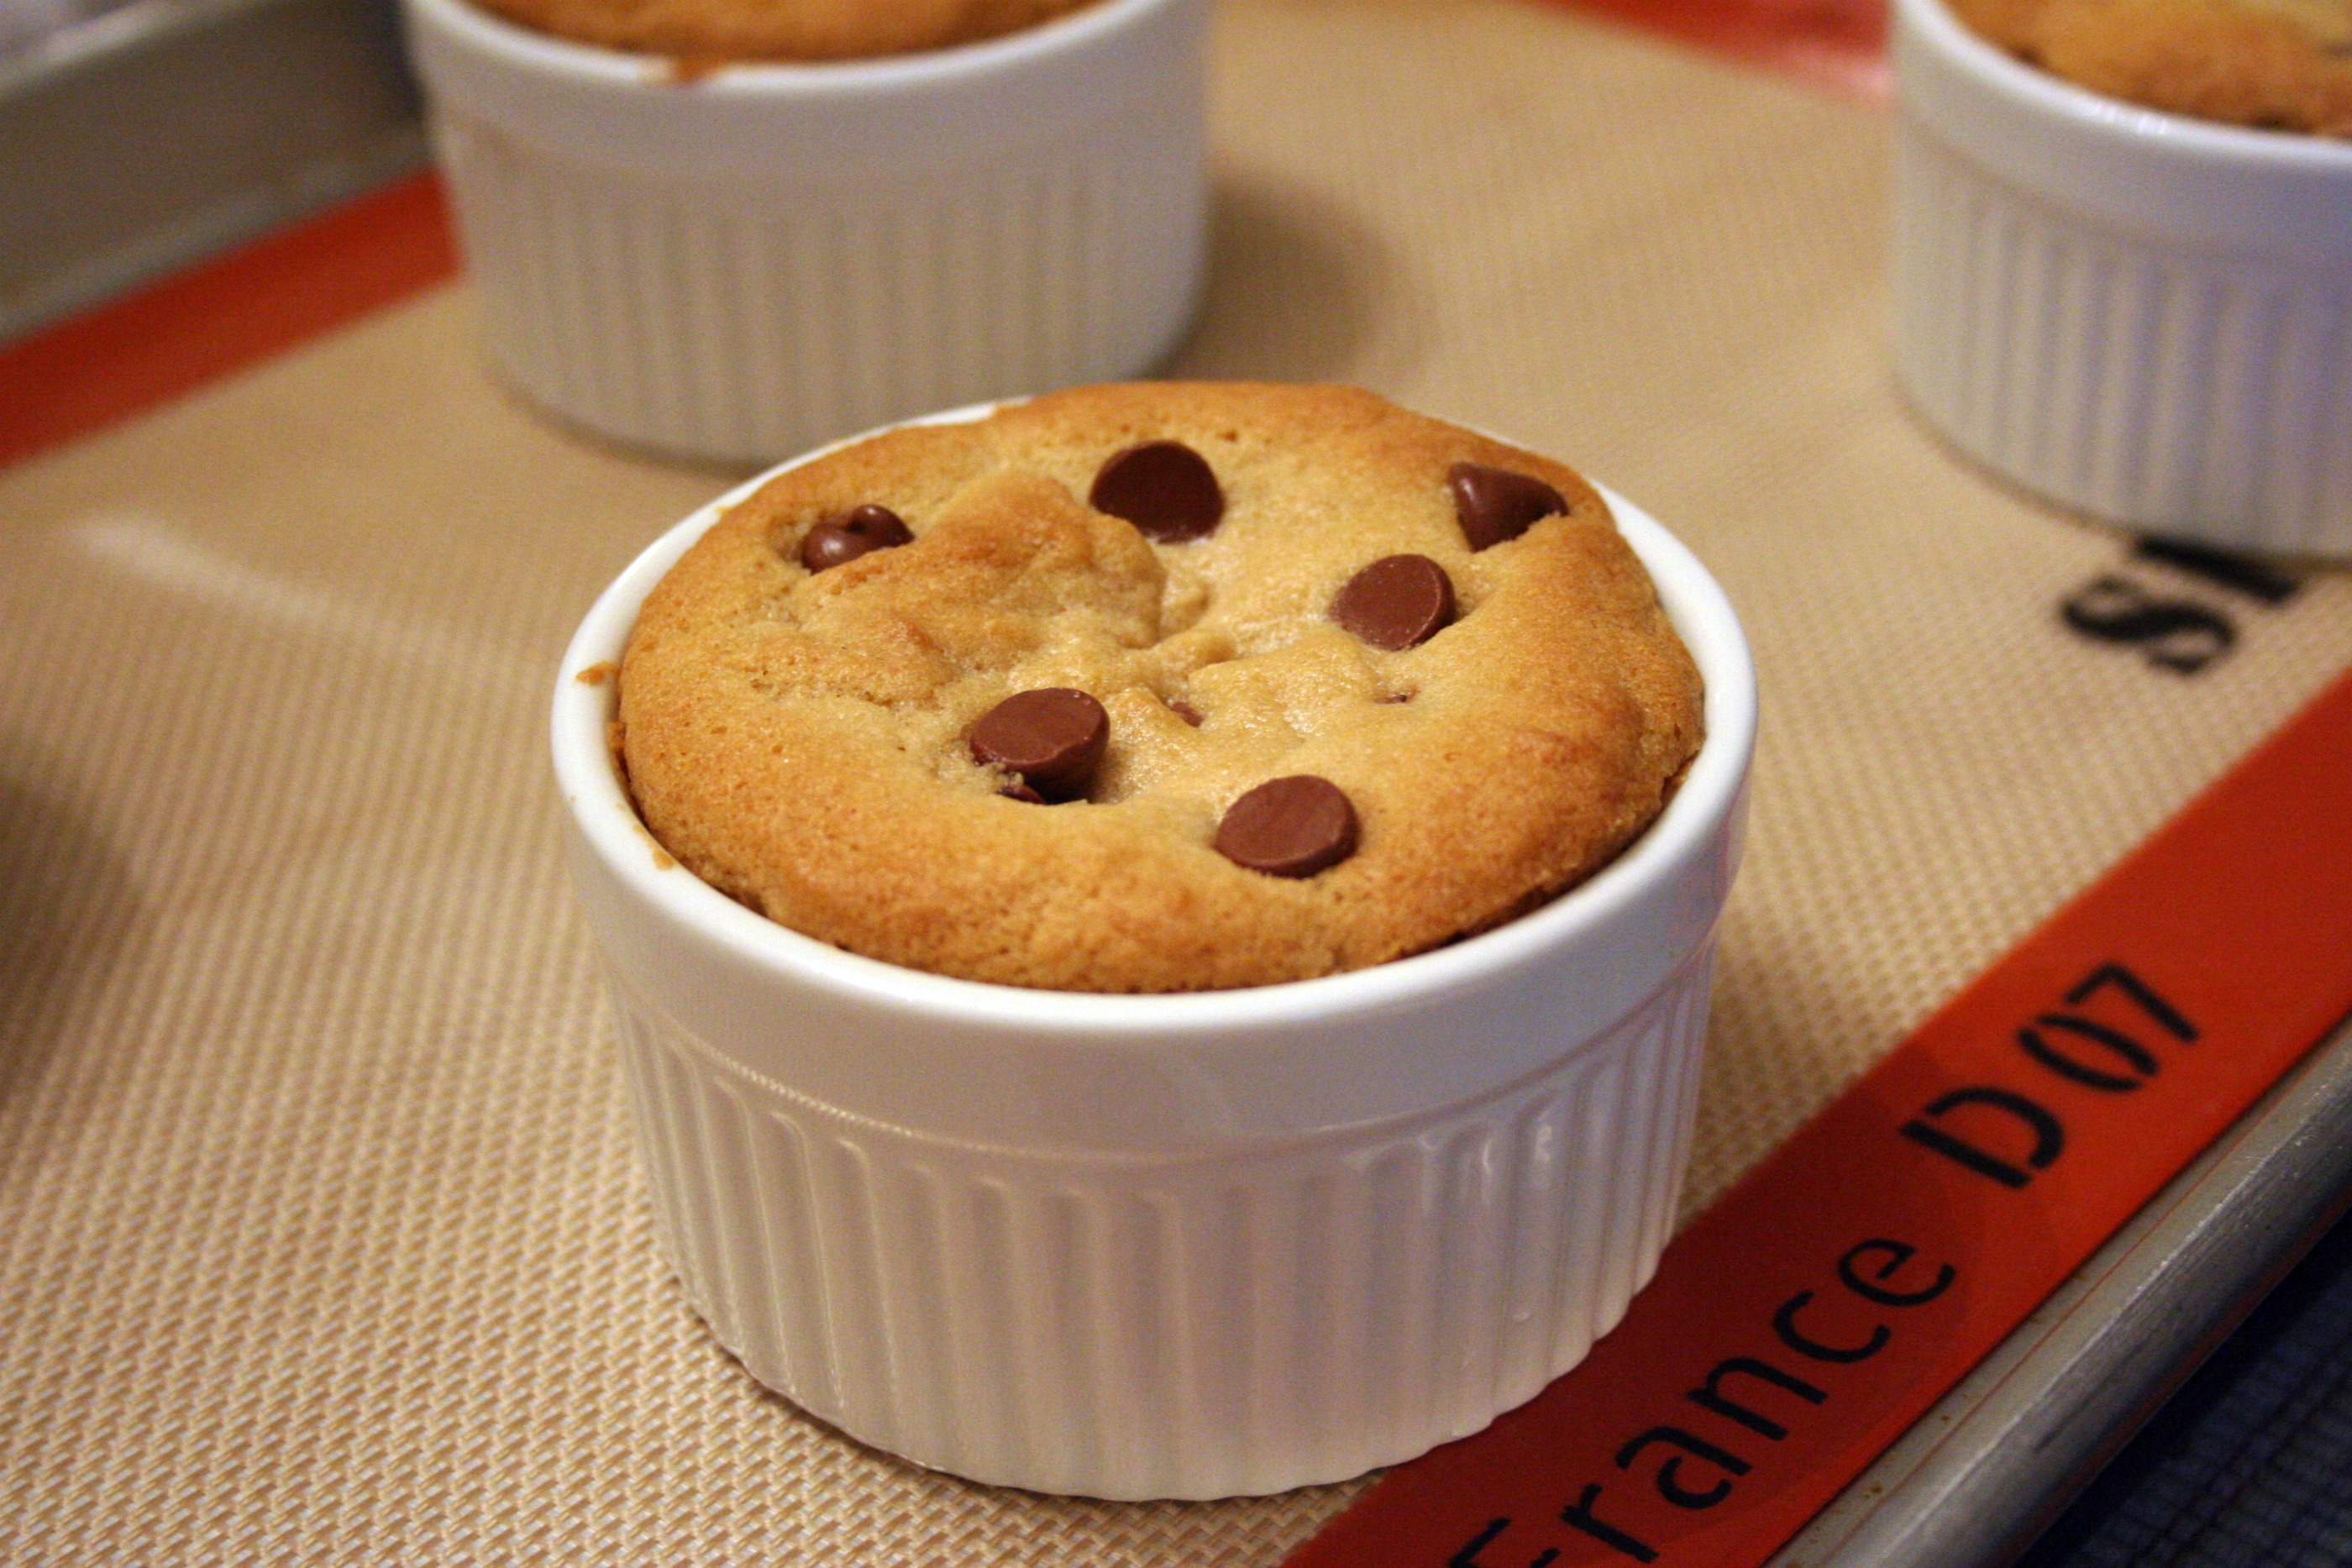 ... chocolate chip cookie bowl chocolate chip cookie bowls homemade cookie